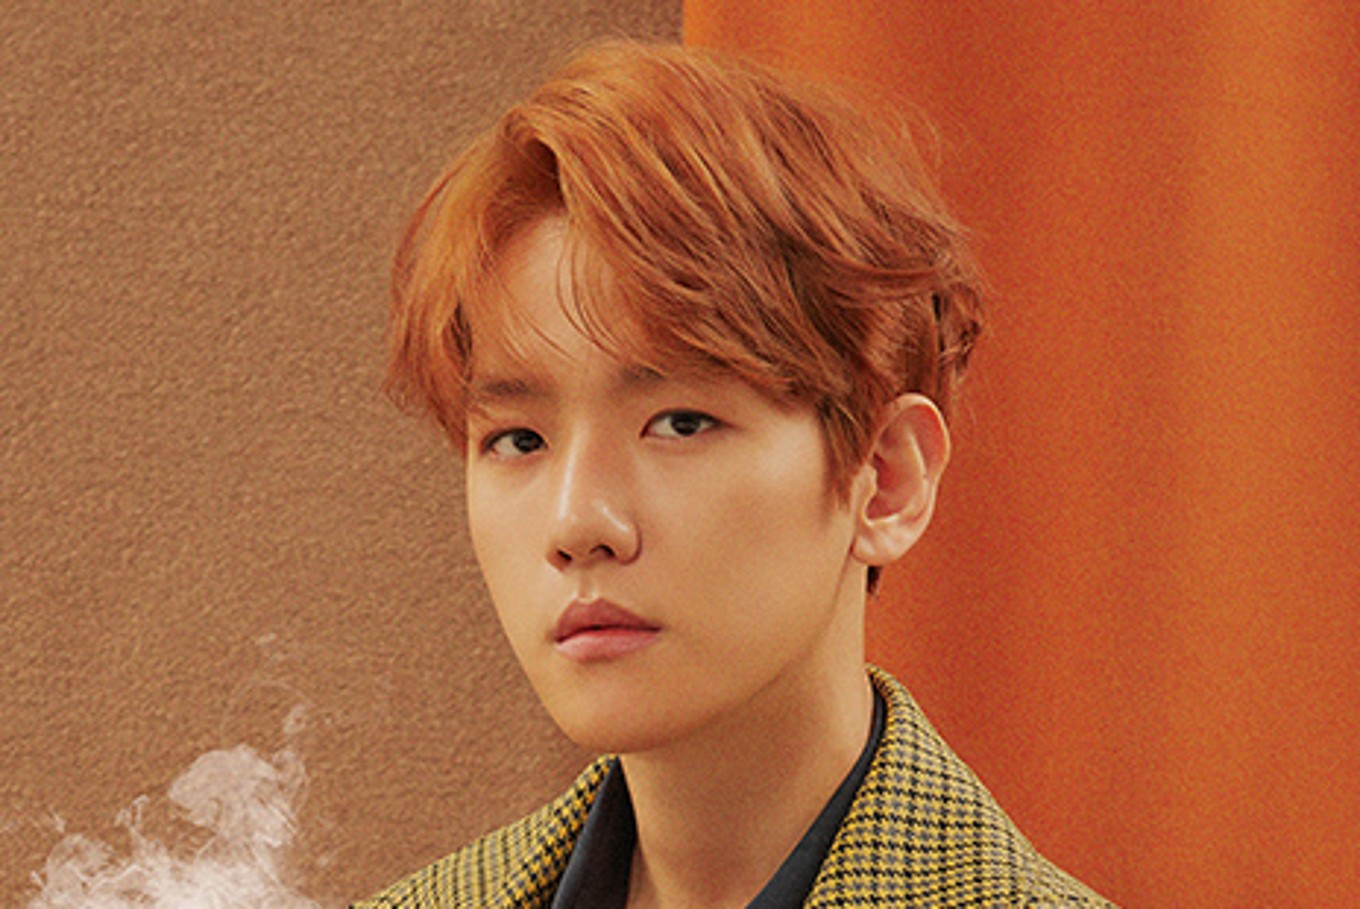 Baekhyun of EXO apologizes for comment on depression - Entertainment - The  Jakarta Post